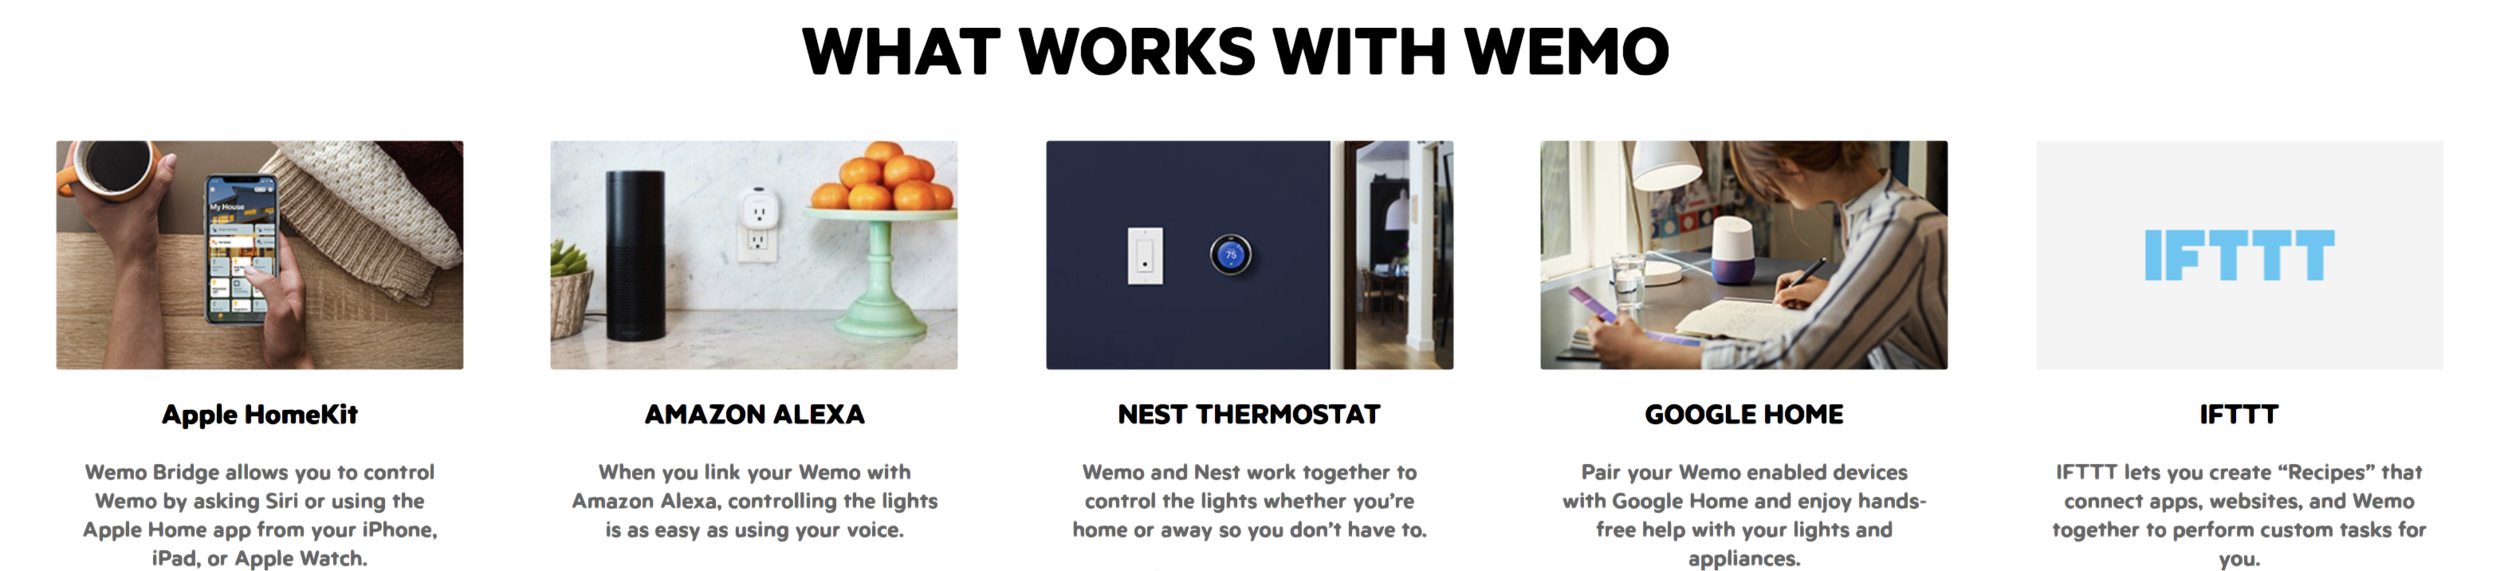 what-works-with-wemo.png